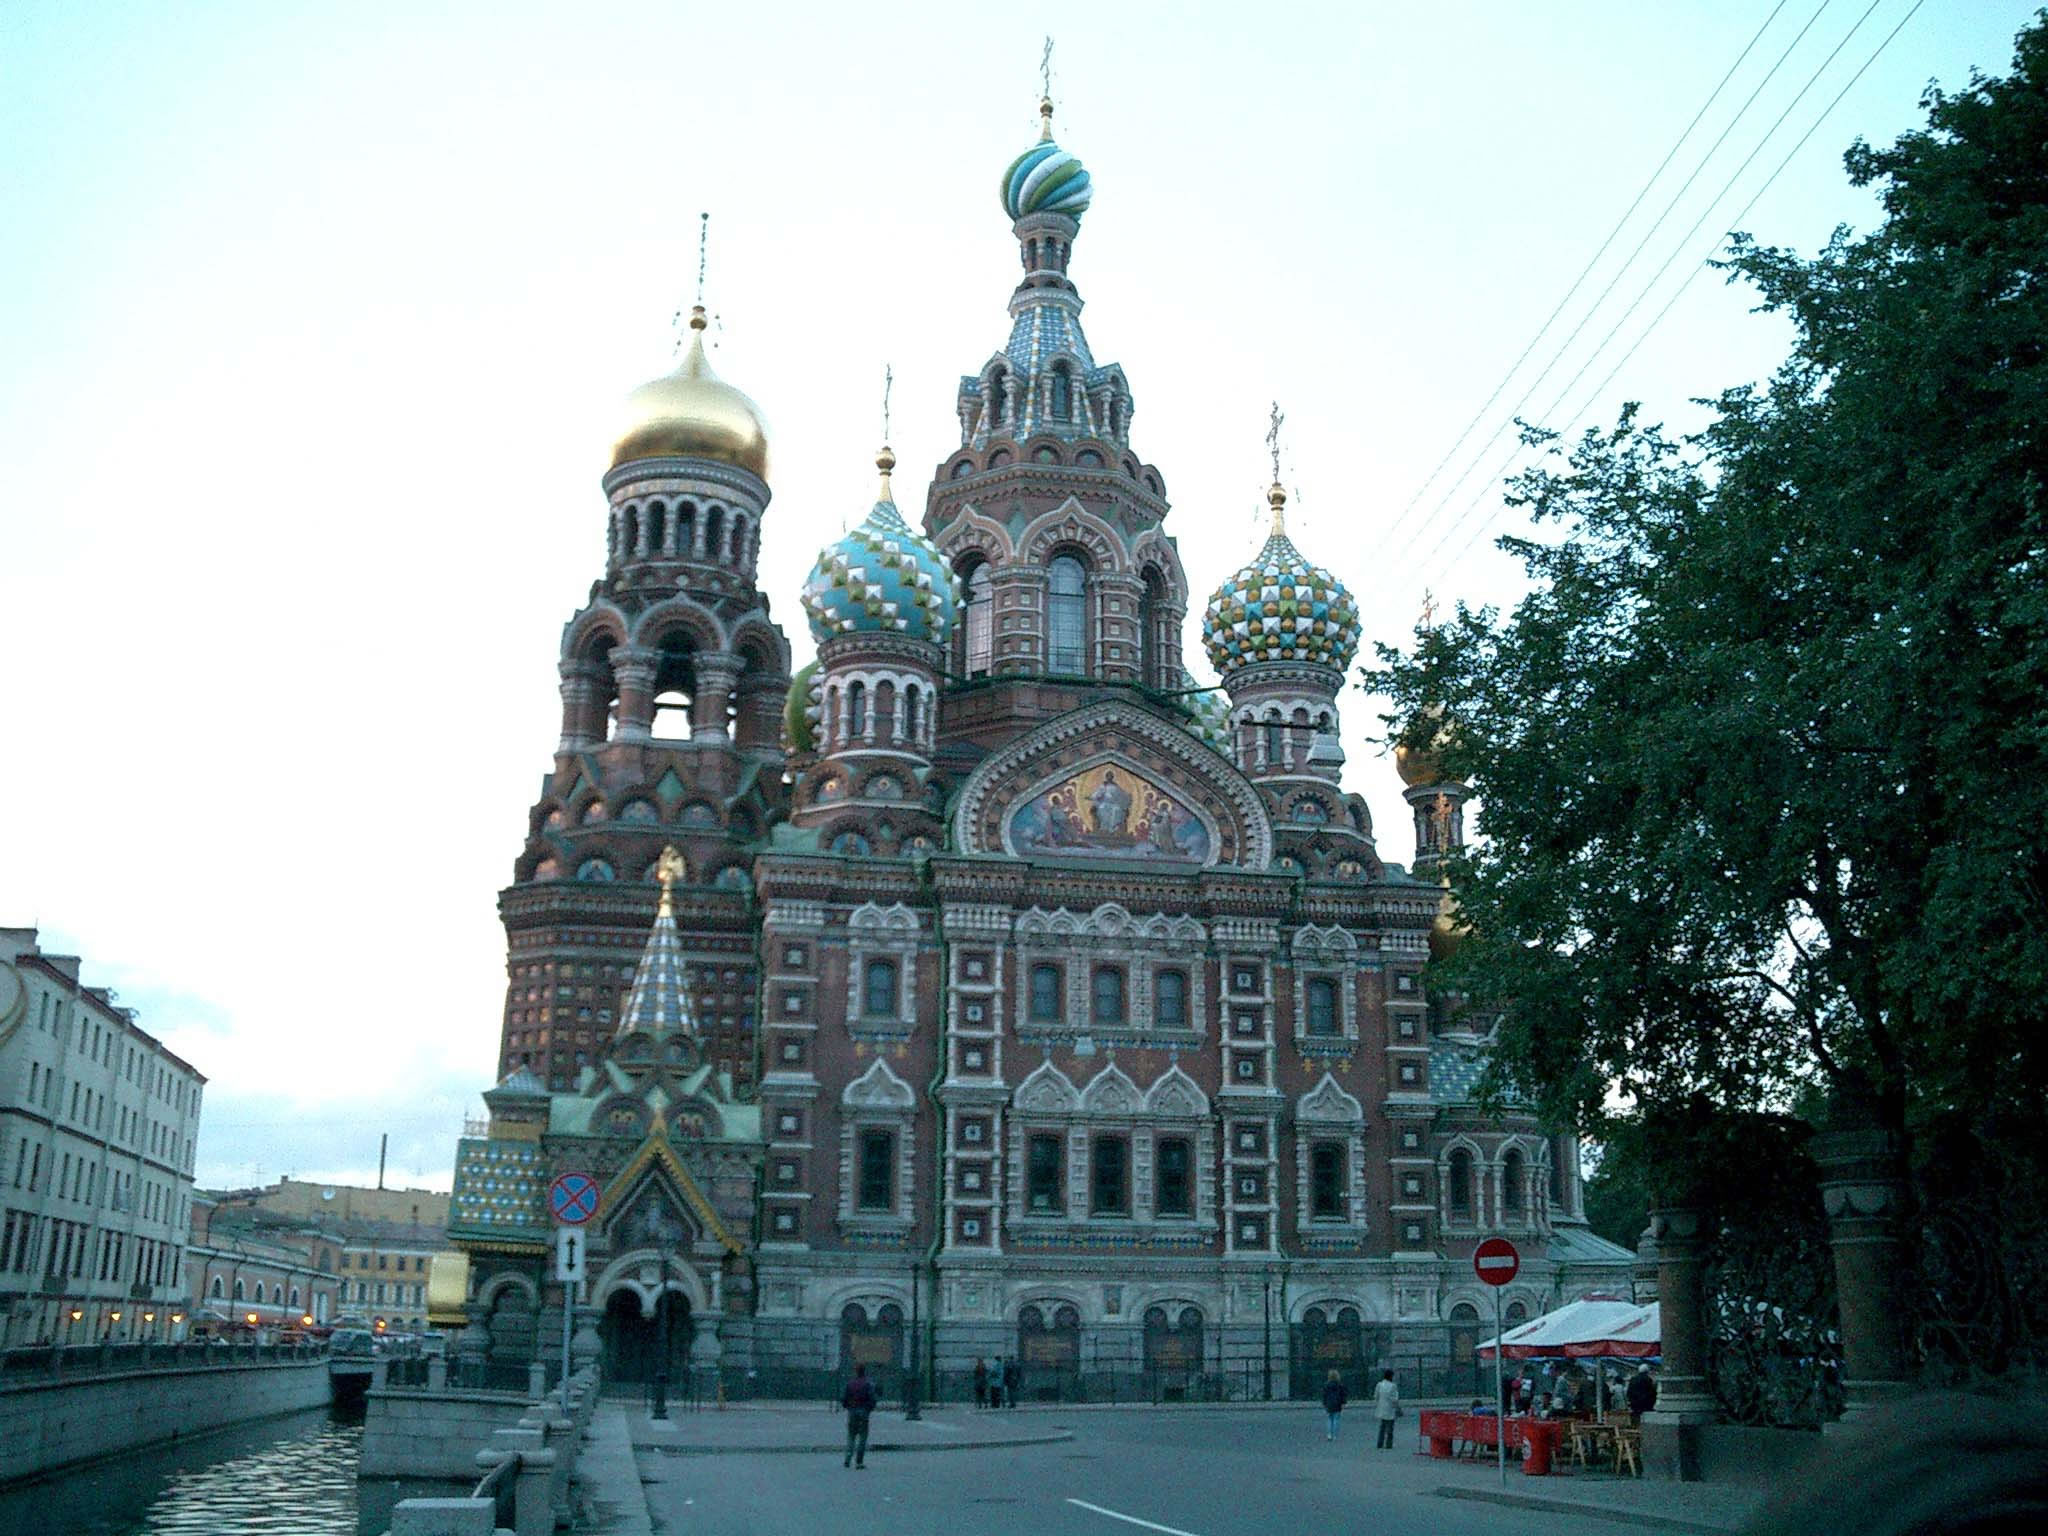 St Petersburg Architecture Church of the Savior on Blood 2005 03